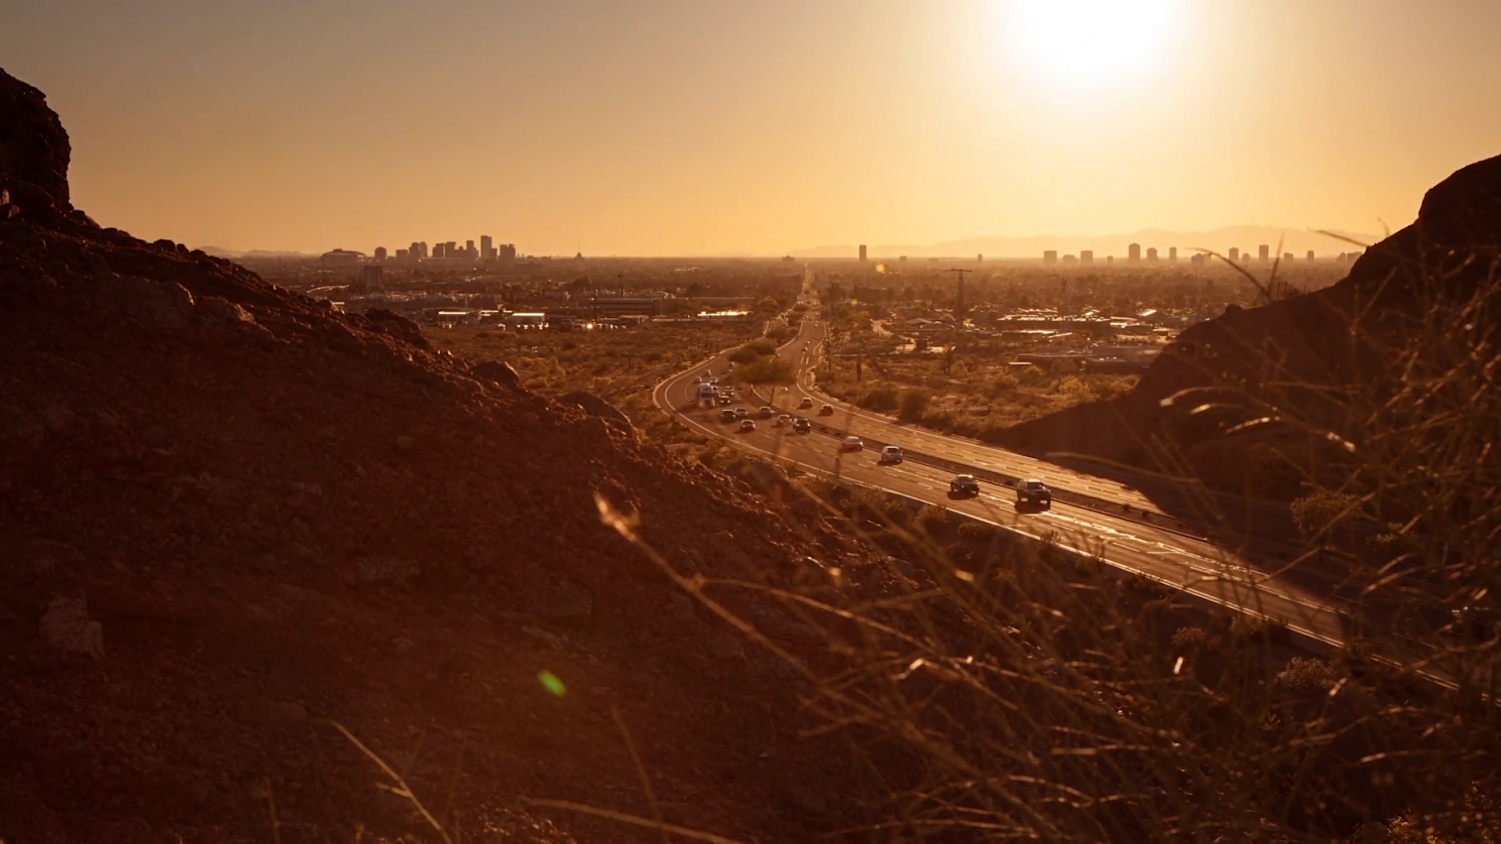 Photo courtesy of Video Blocks user Clippn. A screencap from the timelapse of an Arizona sunset taken above a highway.